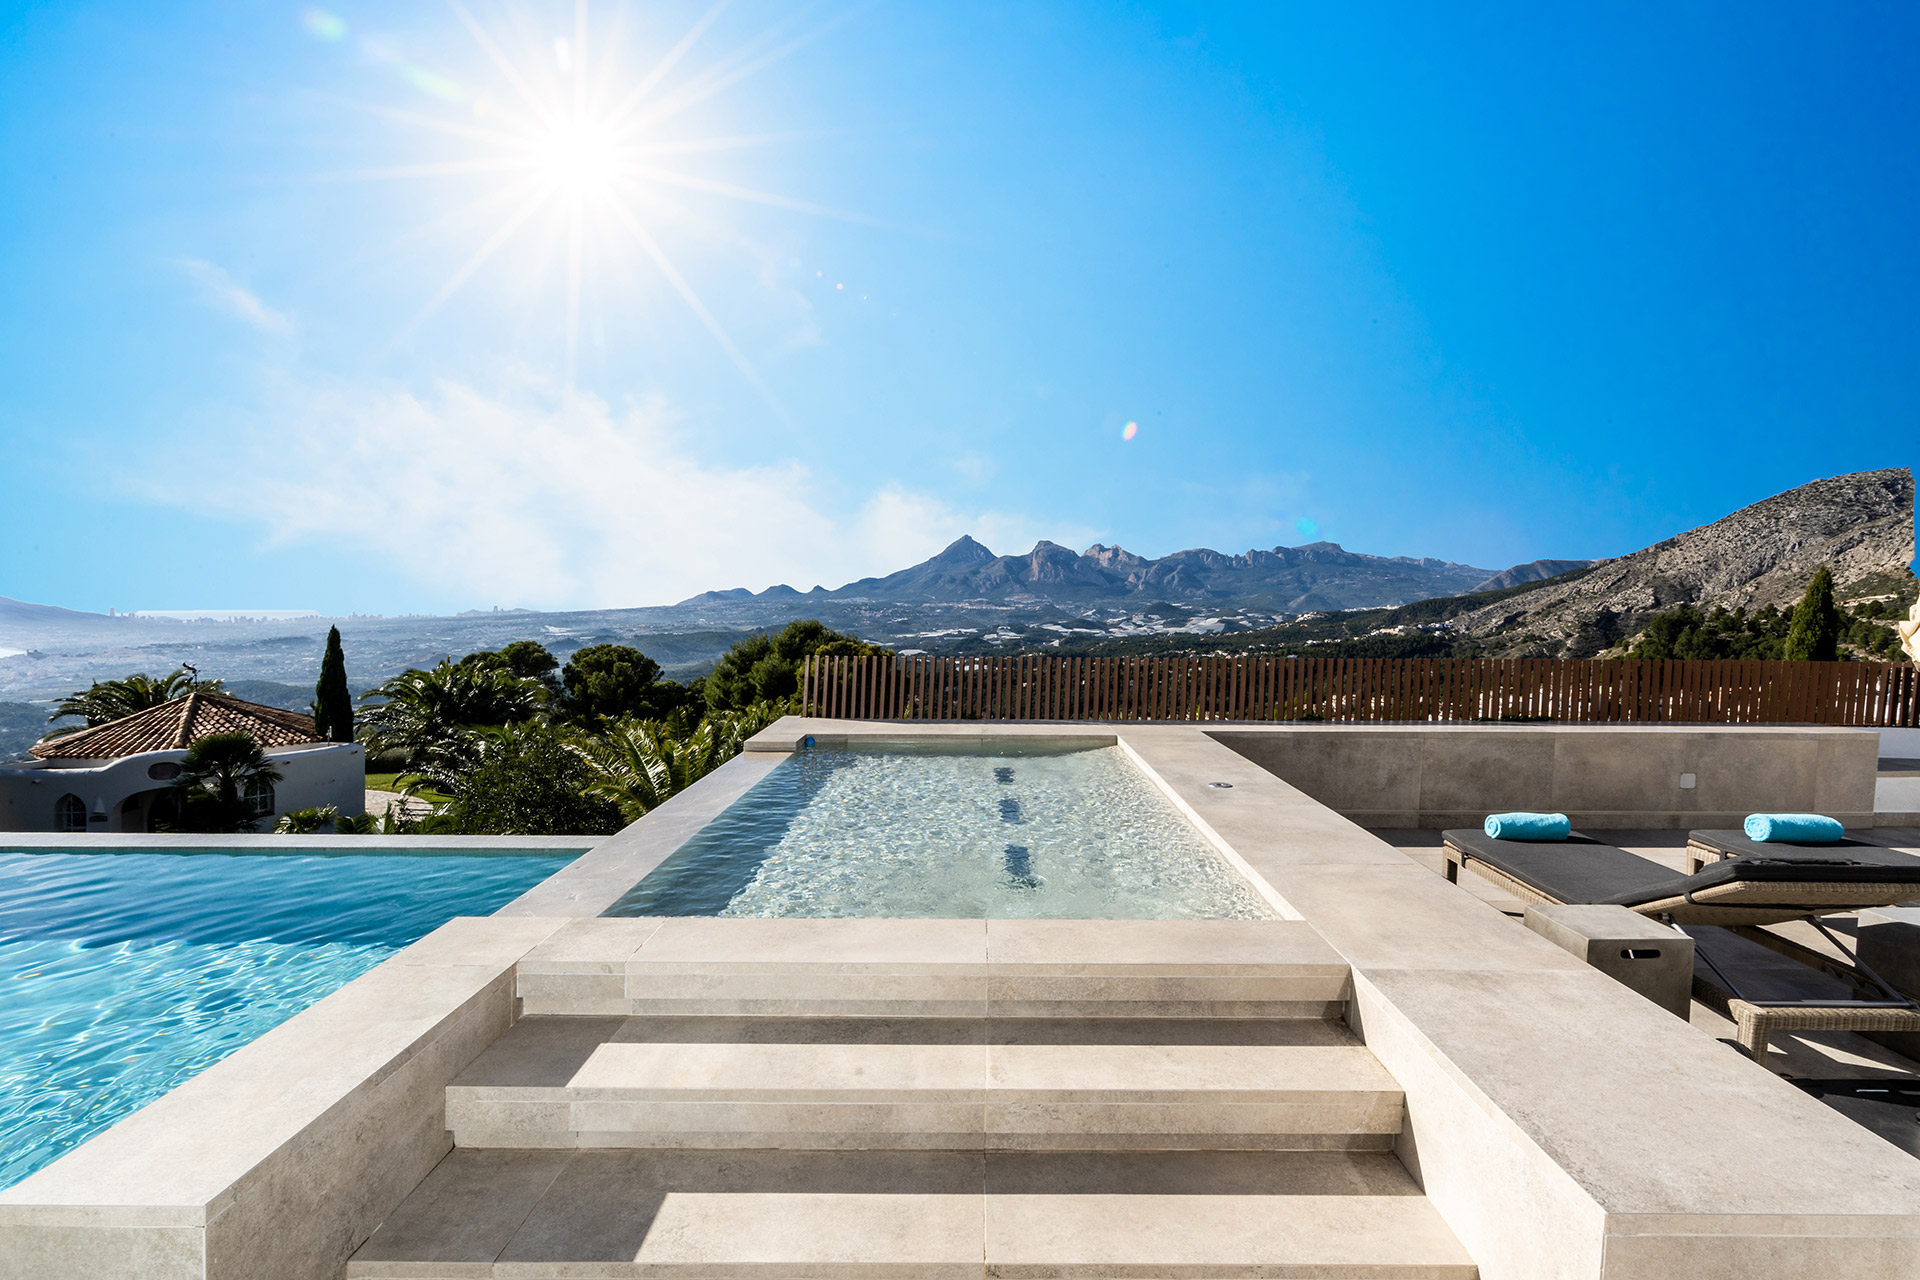 luxury villa rental, Spain, ESPALT 3228